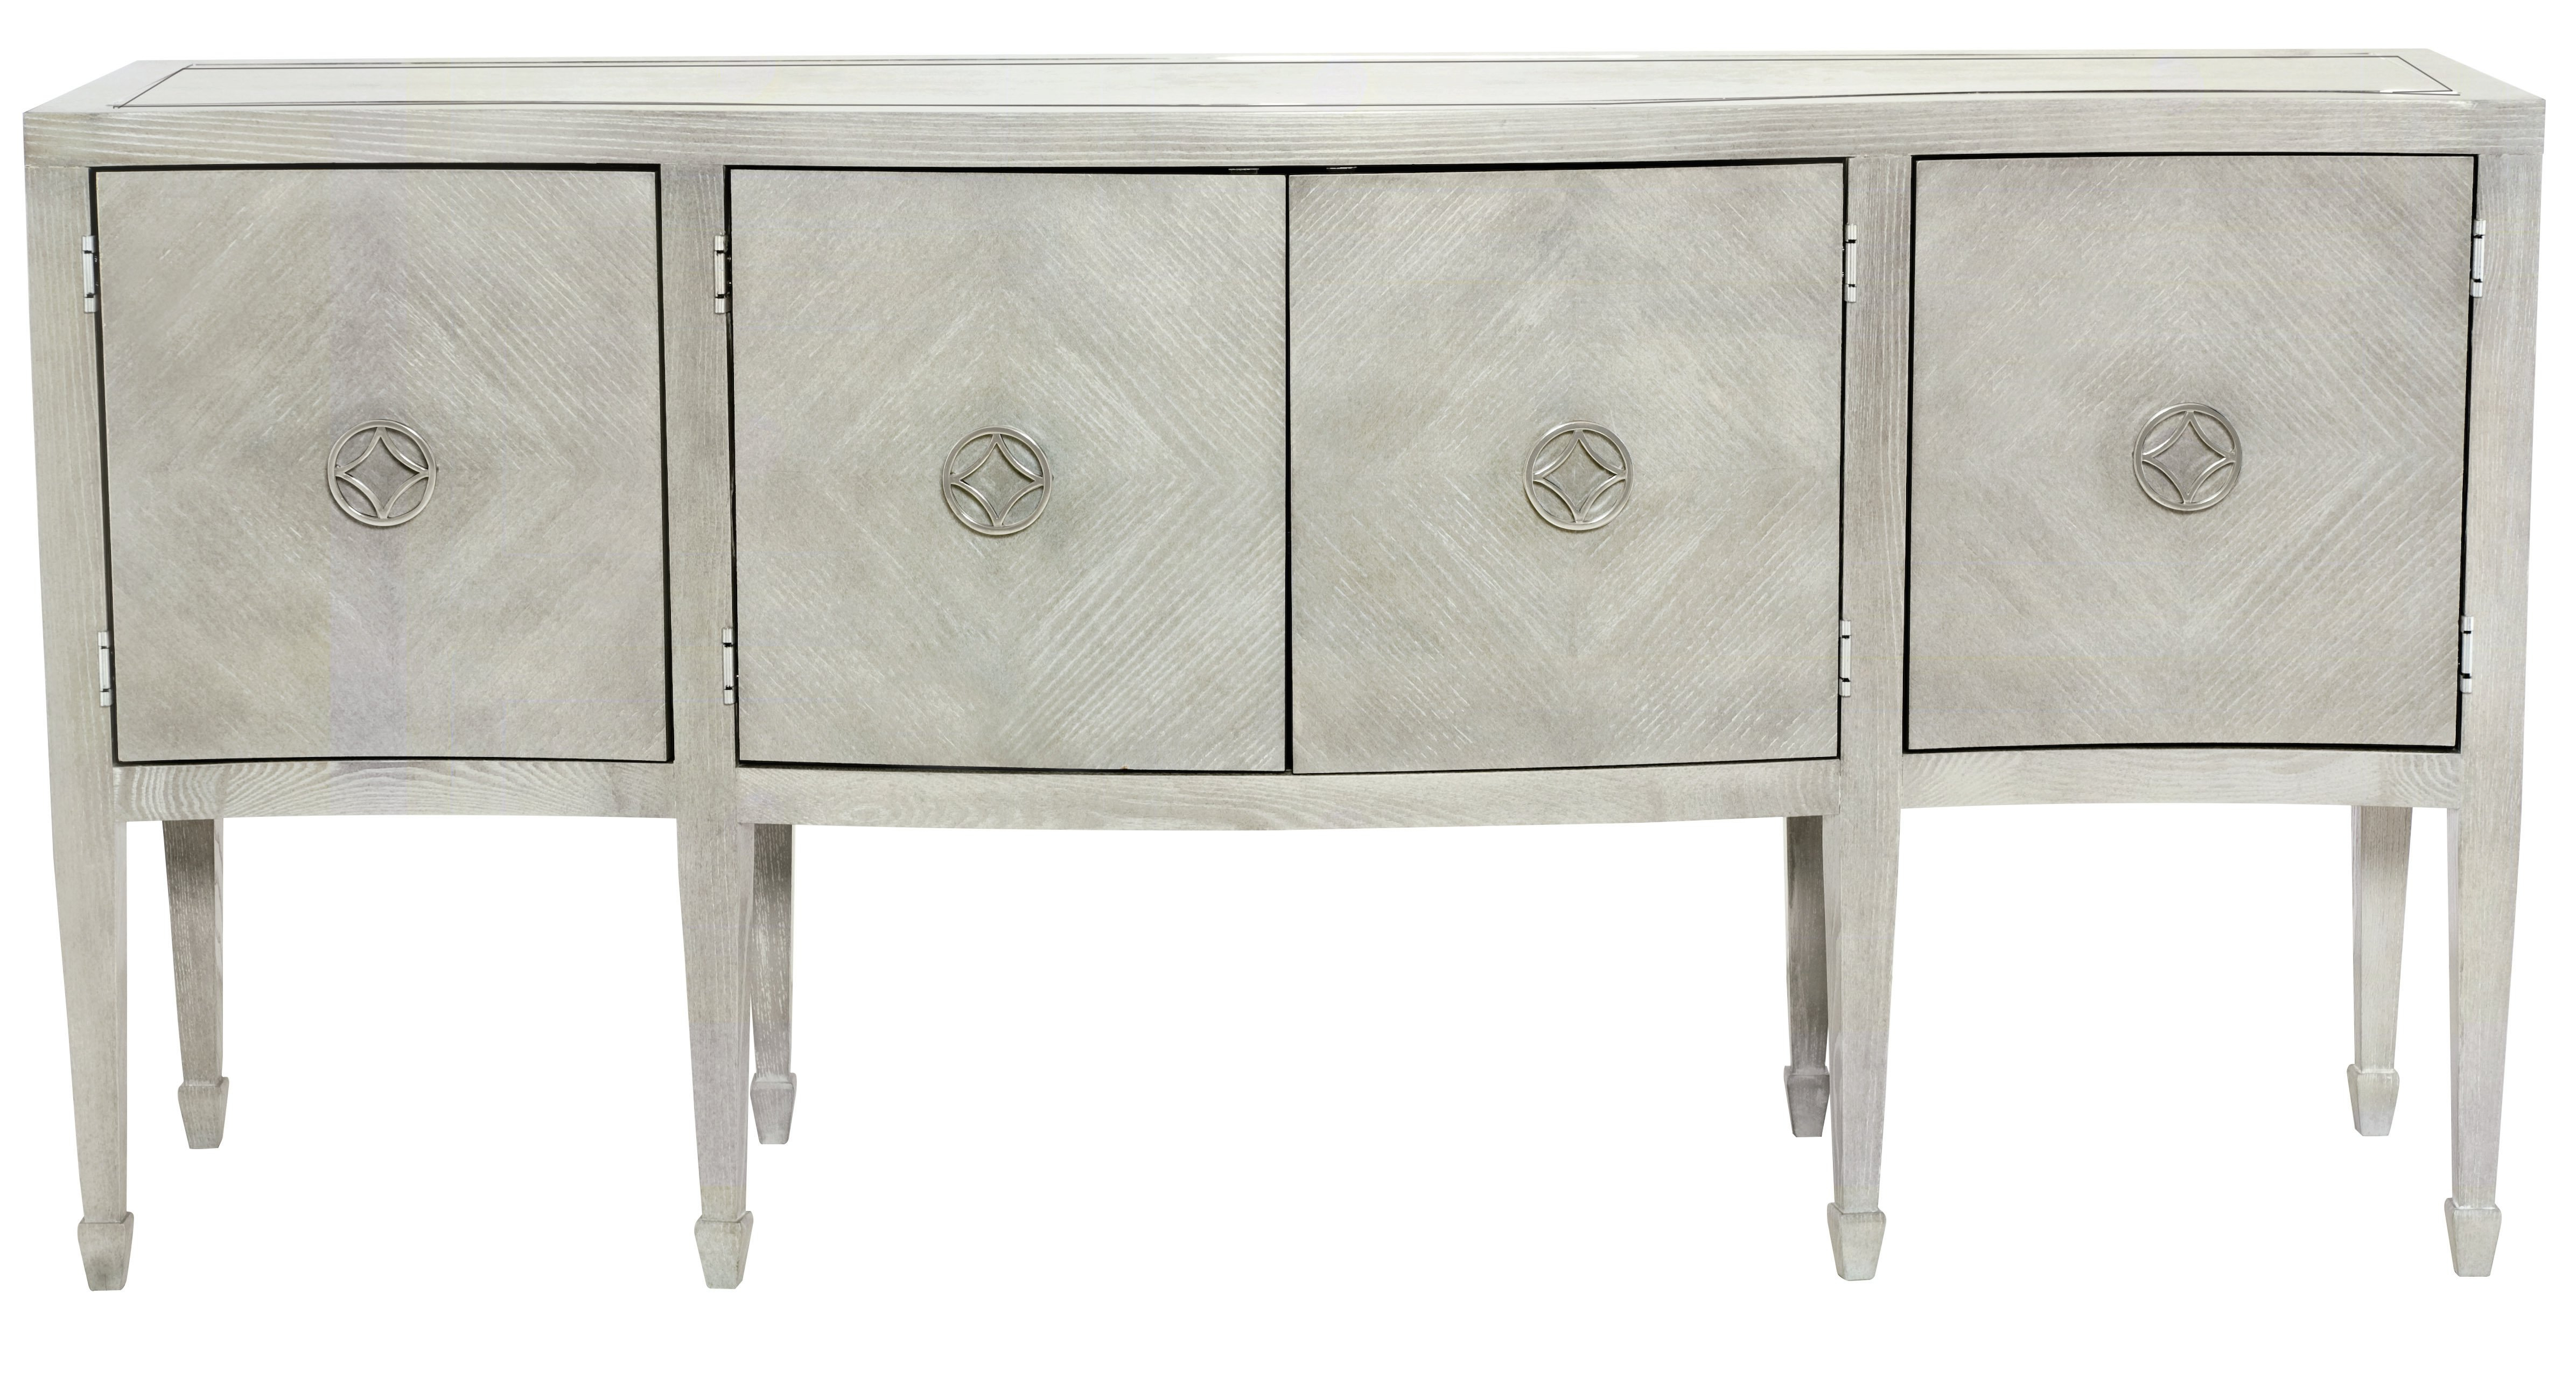 Gray Wood Sideboards & Buffets | Joss & Main Regarding Cazenovia Charnley Sideboards (Gallery 10 of 20)